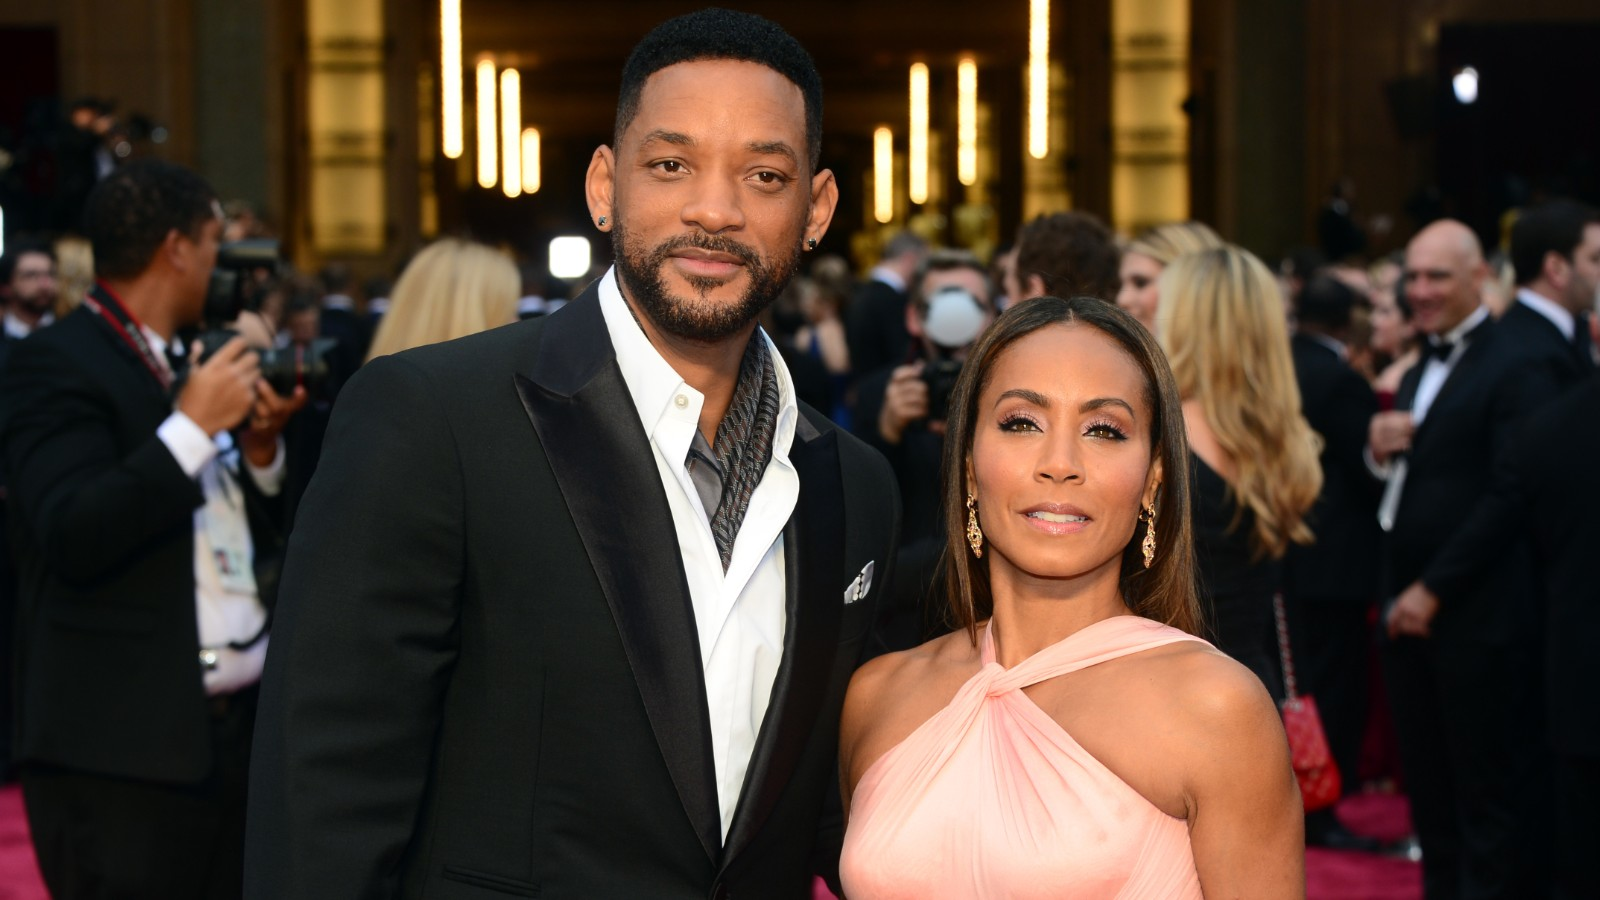 Will smith marriage status